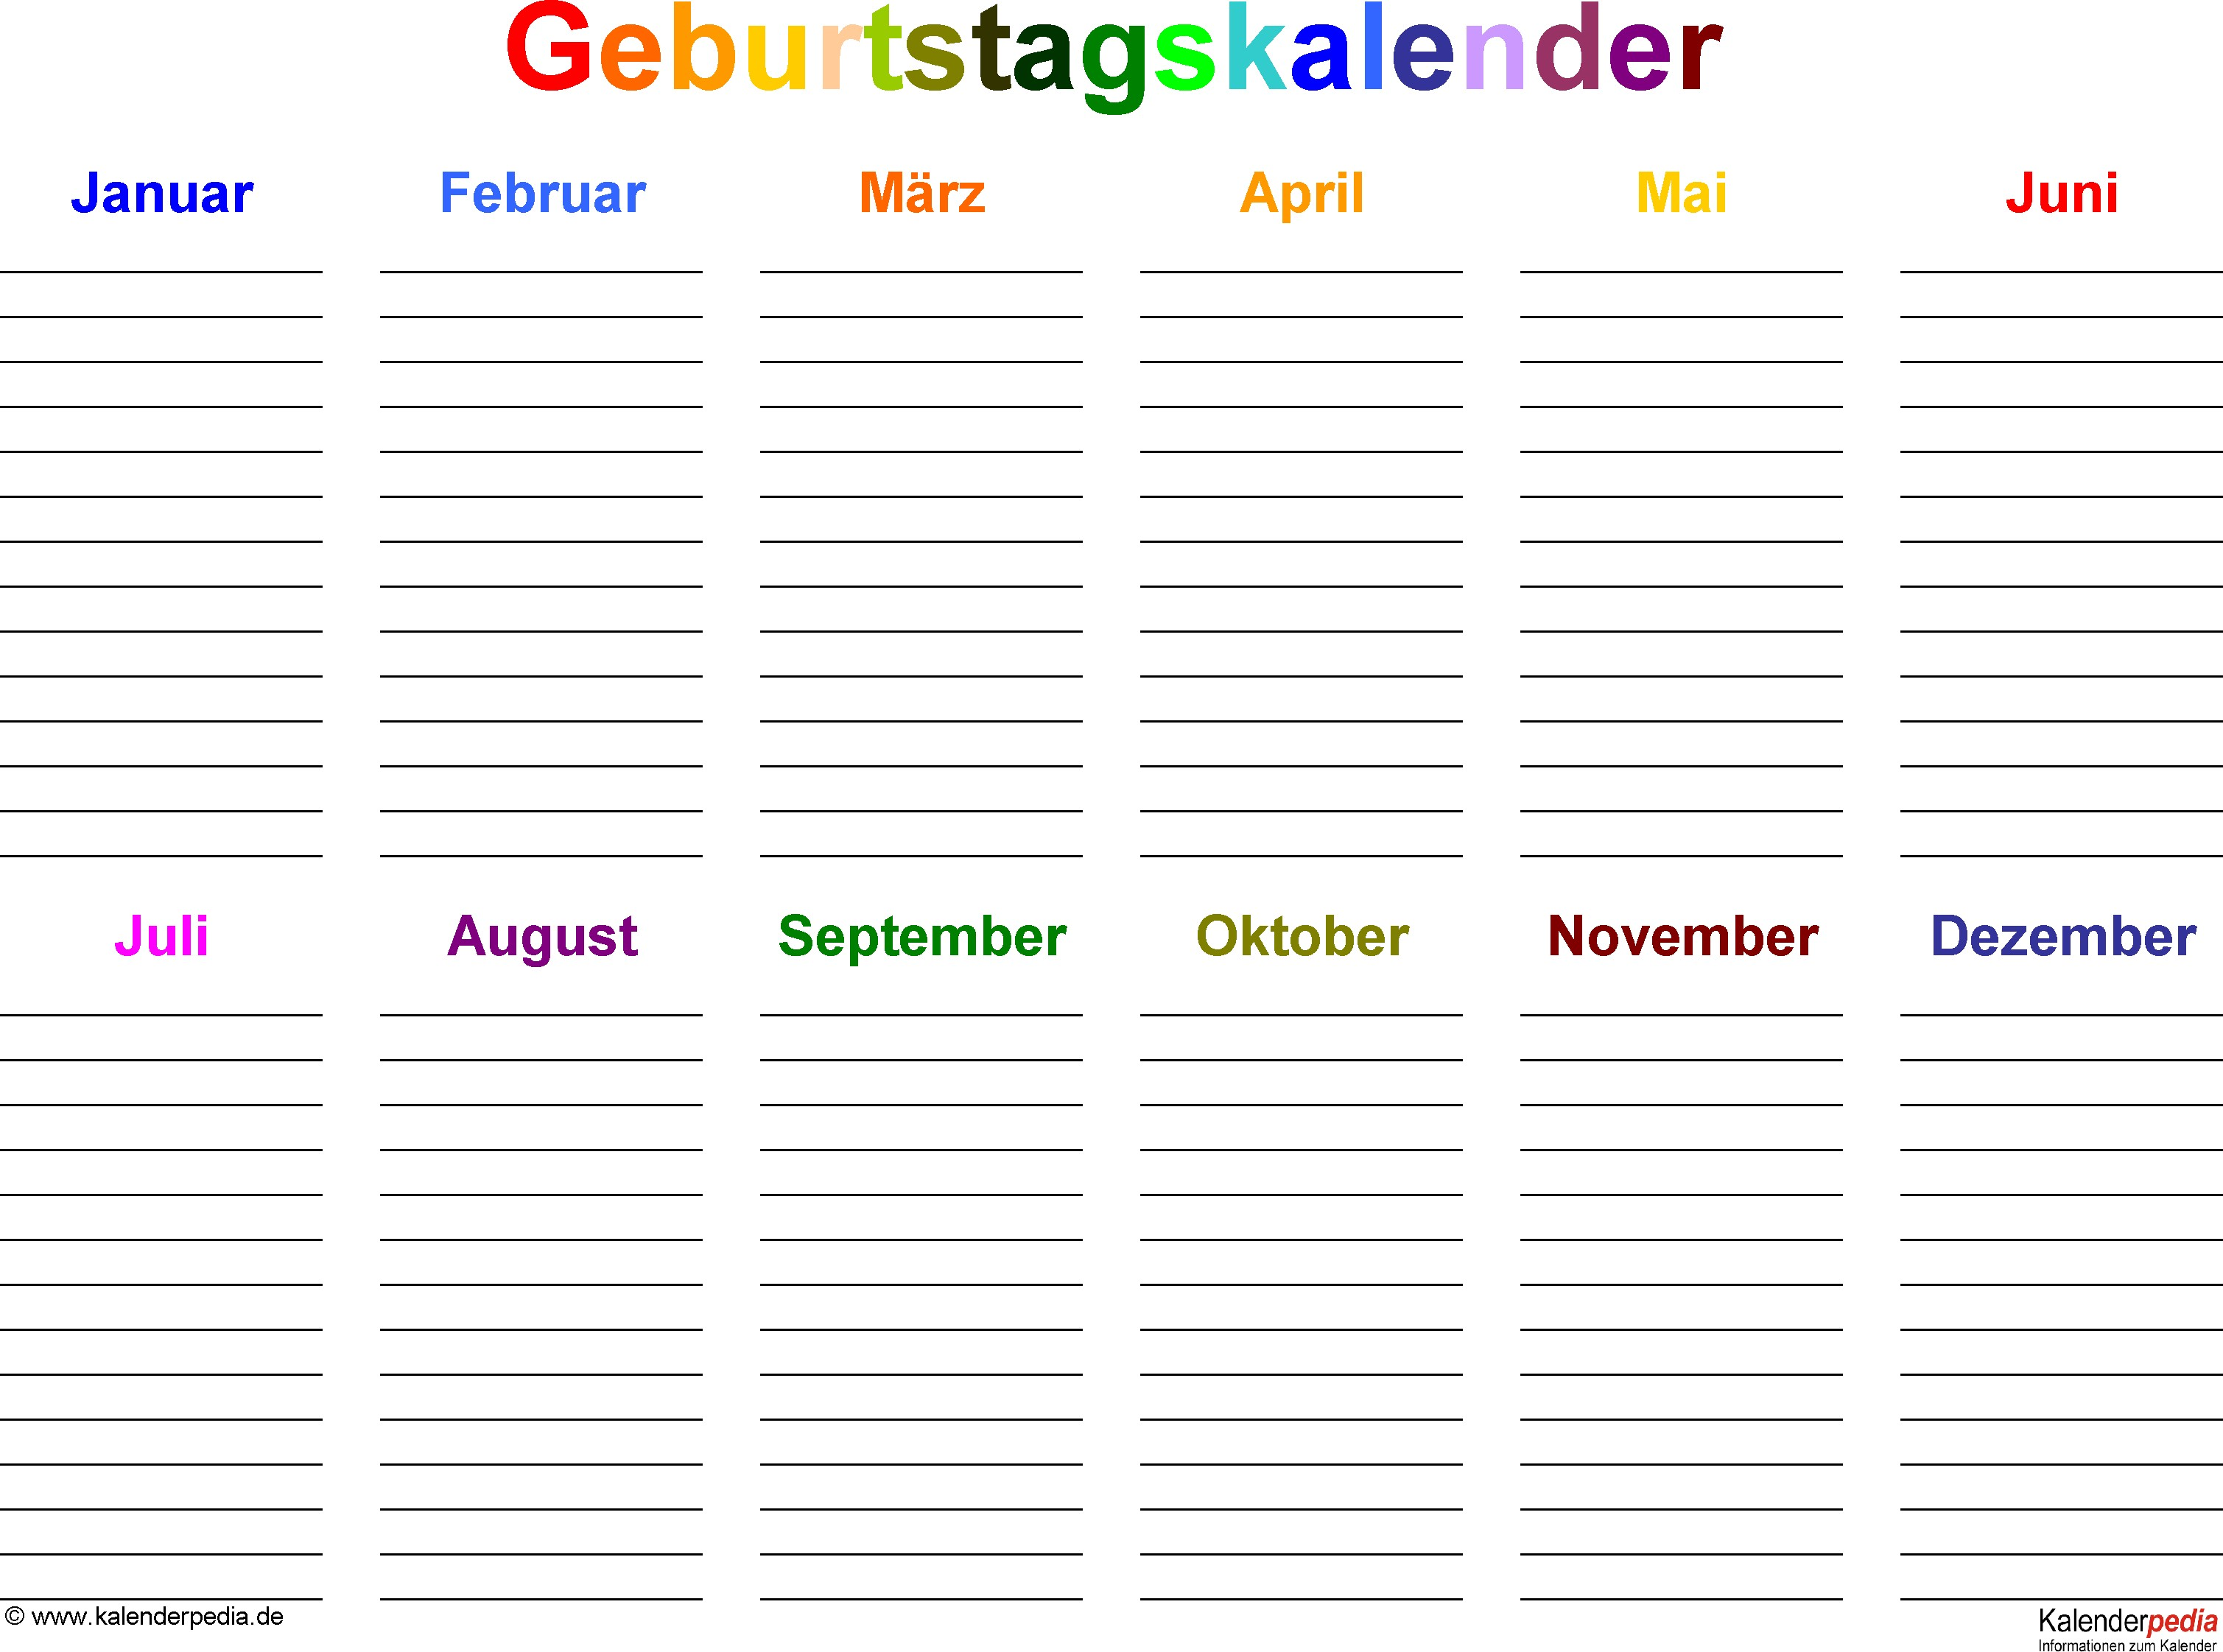 Kalender 2019 Excel Indonesia Download Actual Kalender Geburtstage Ausdrucken Of Kalender 2019 Excel Indonesia Download Más Arriba-a-fecha Michaelkorsoutletonline – Page 8 Of 8 – Just Another WordPress Site